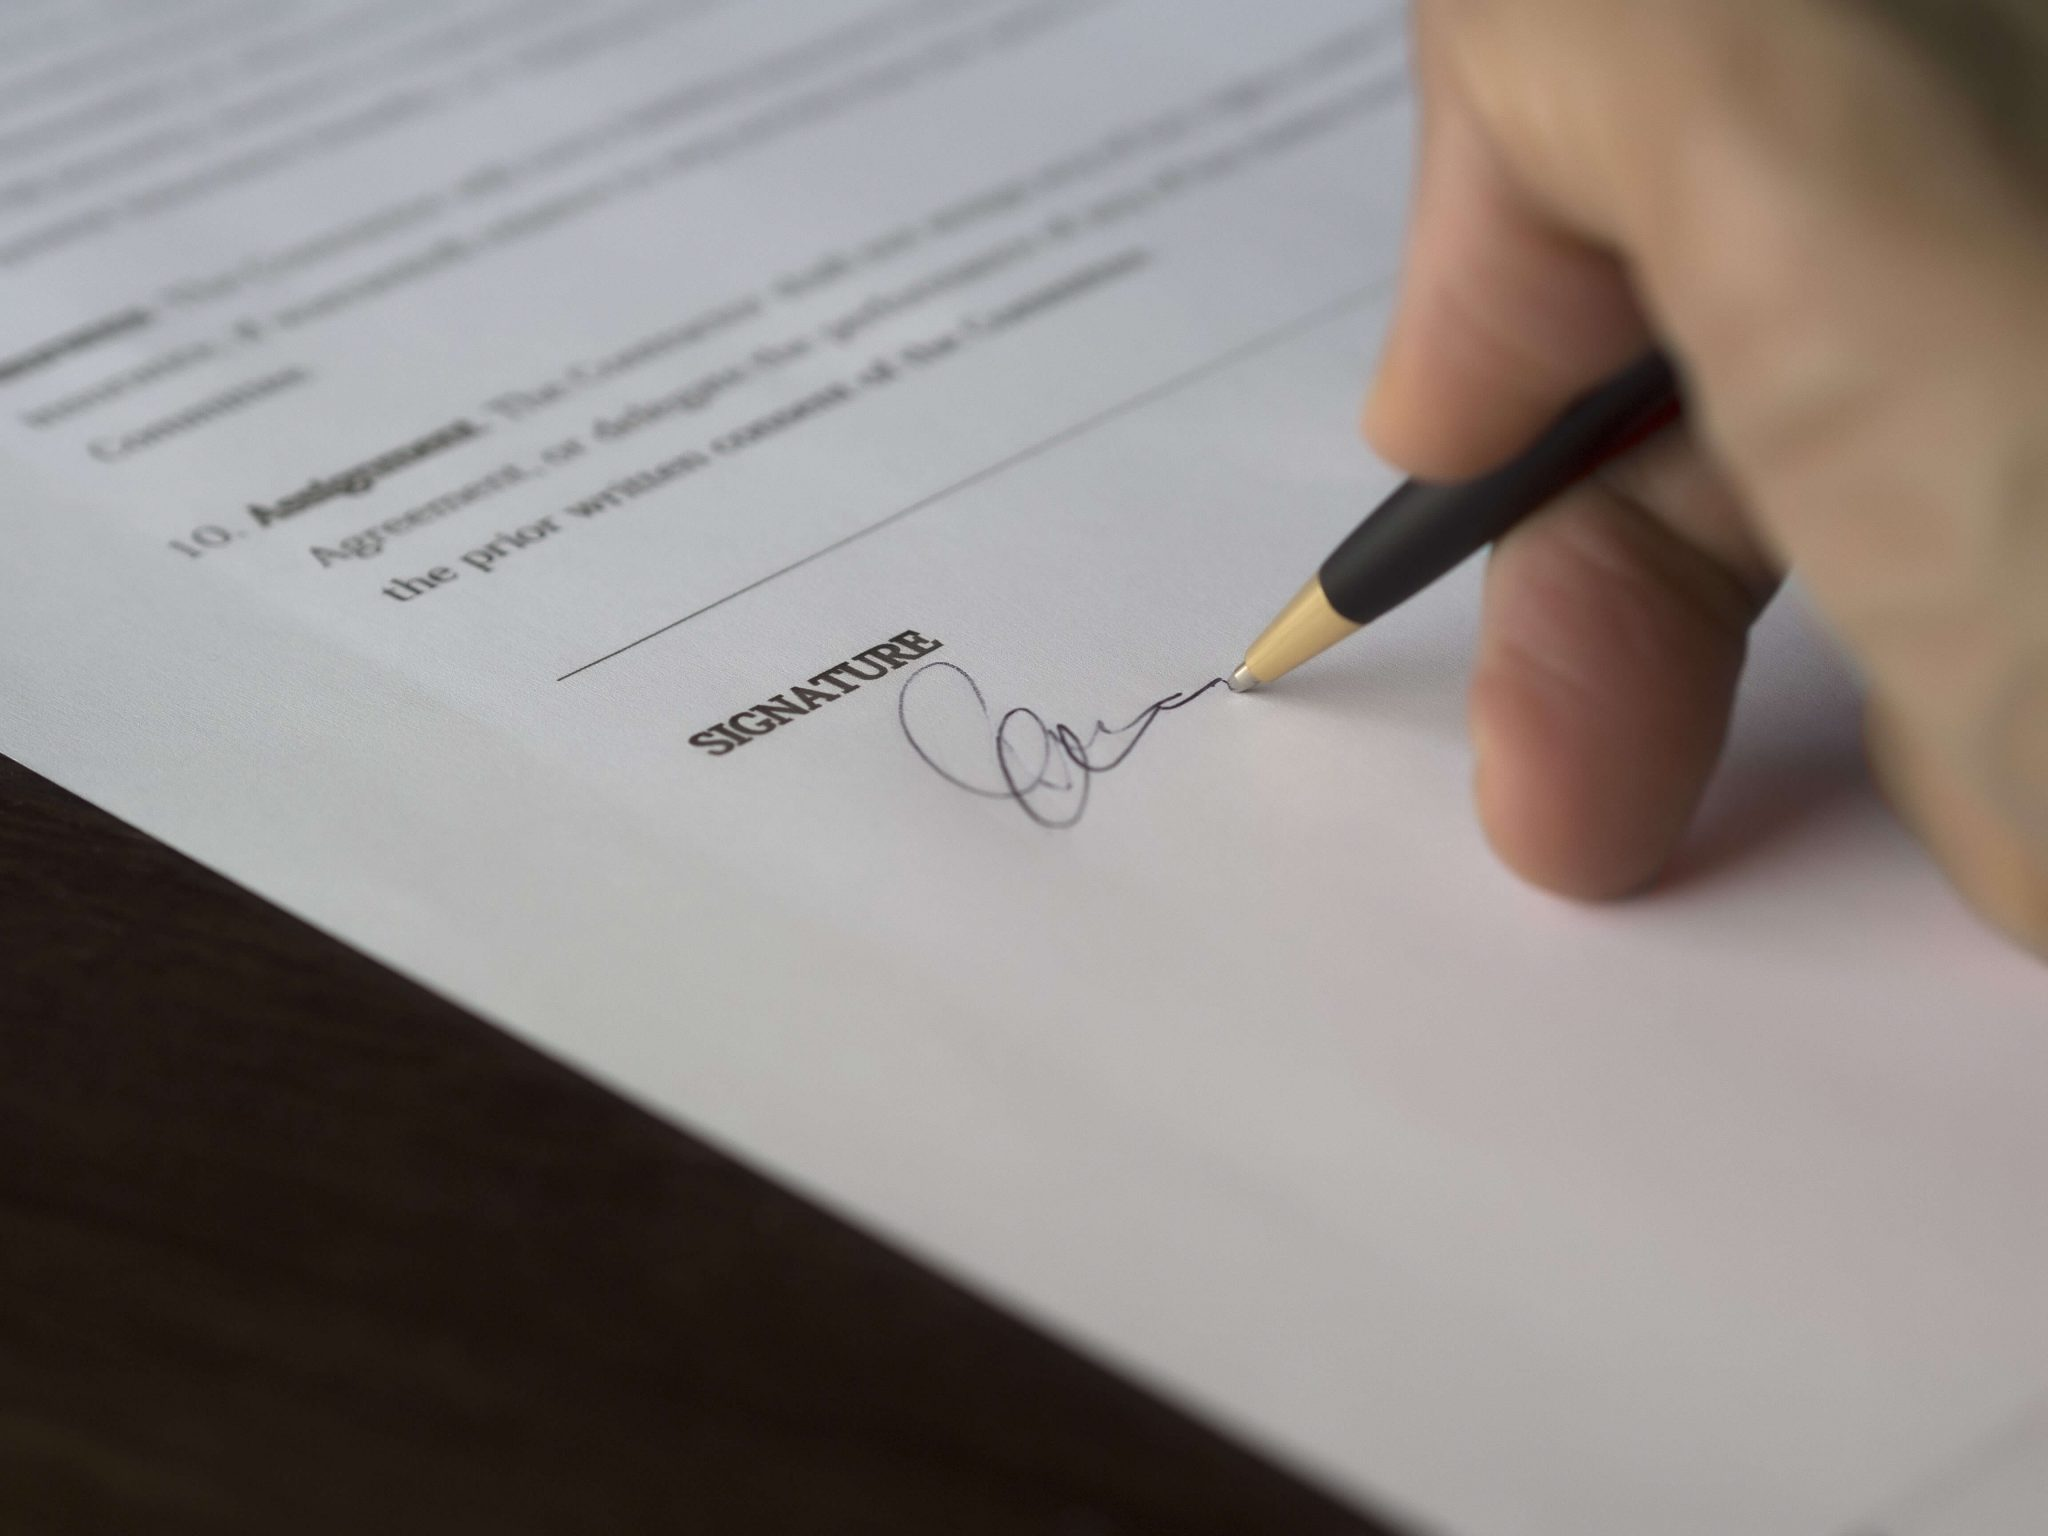 Signing a written contract with pen